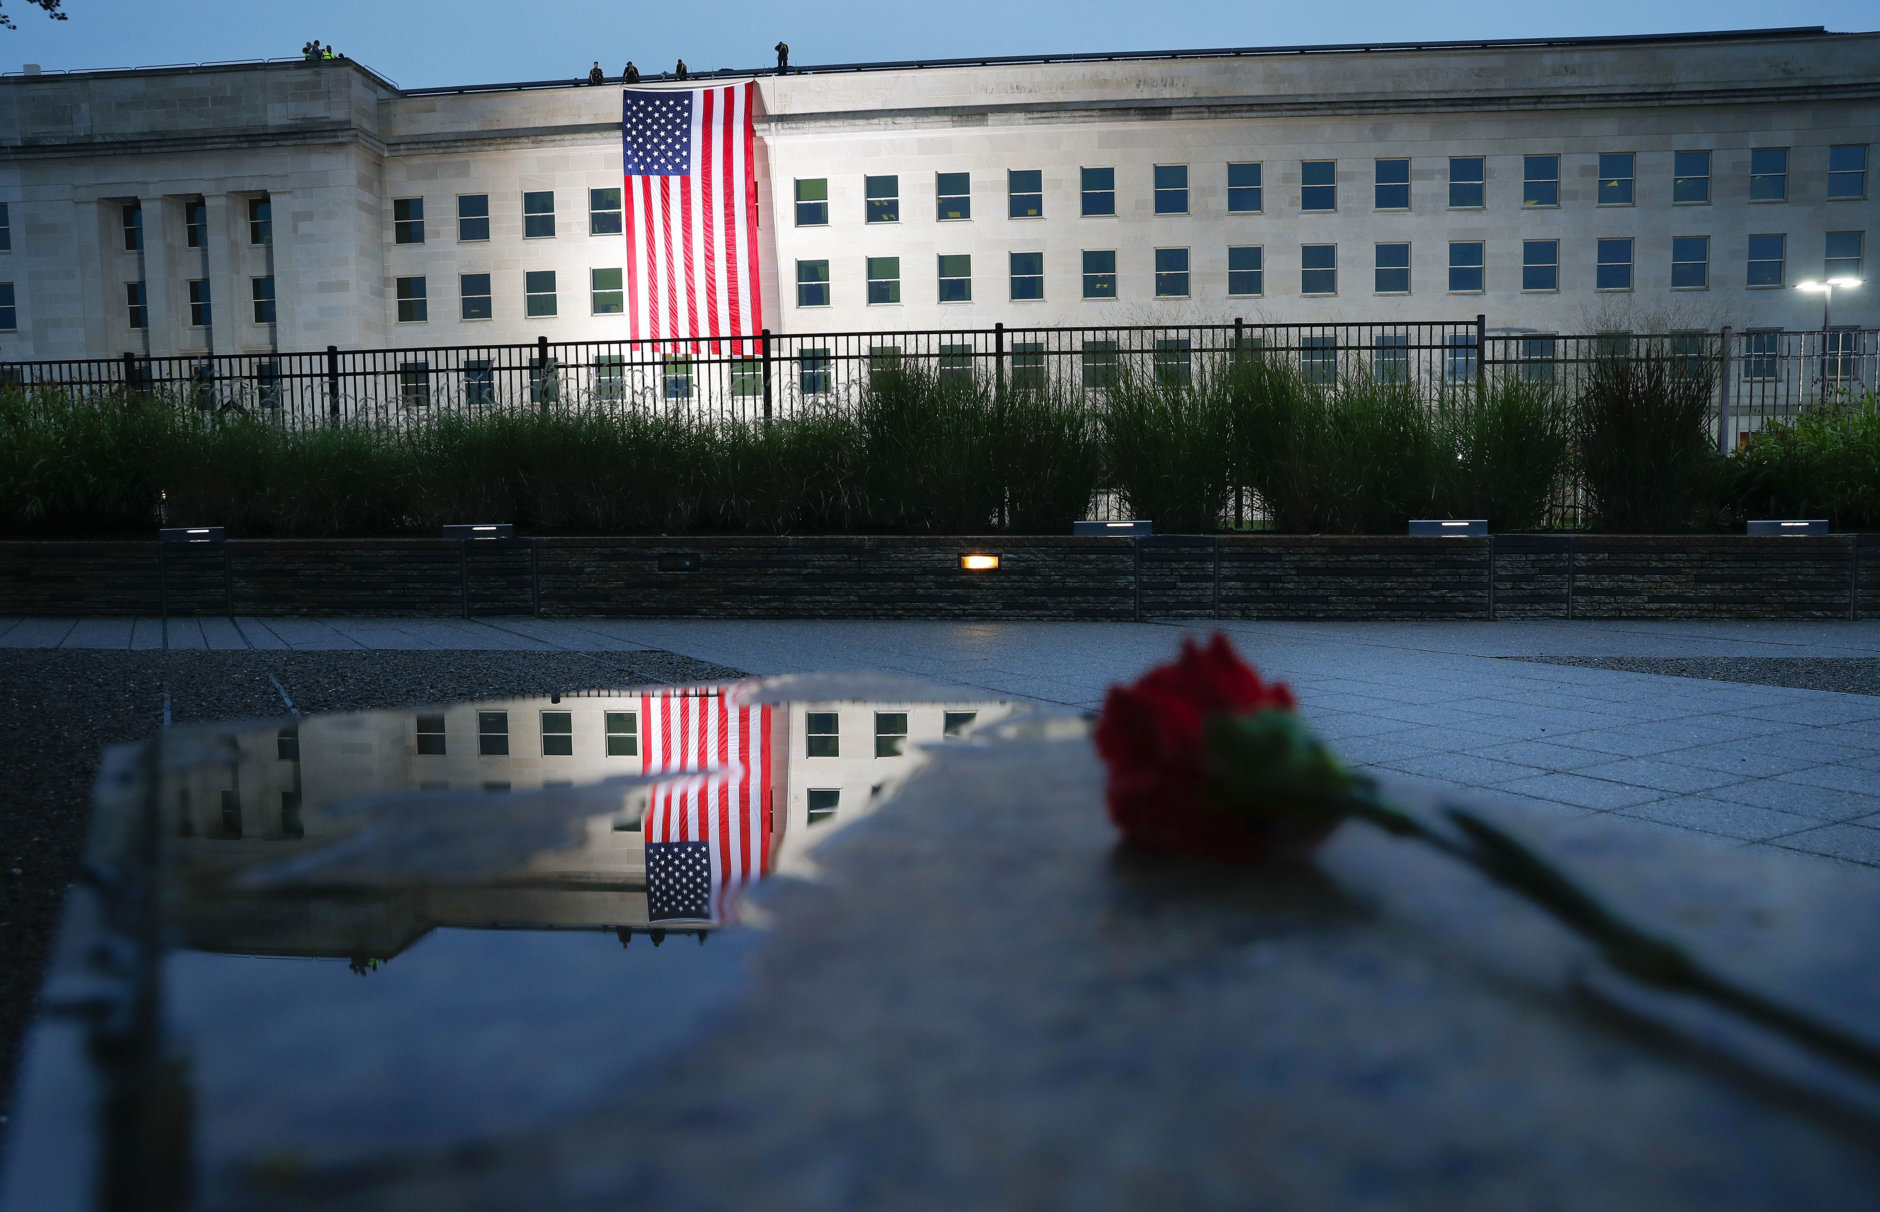 A U.S. flag is unfurled at sunrise on Tuesday, Sept. 11, 2018, at the Pentagon on the 17th anniversary of the Sept. 11, 2001, terrorist attacks. (AP Photo/Pablo Martinez Monsivais)